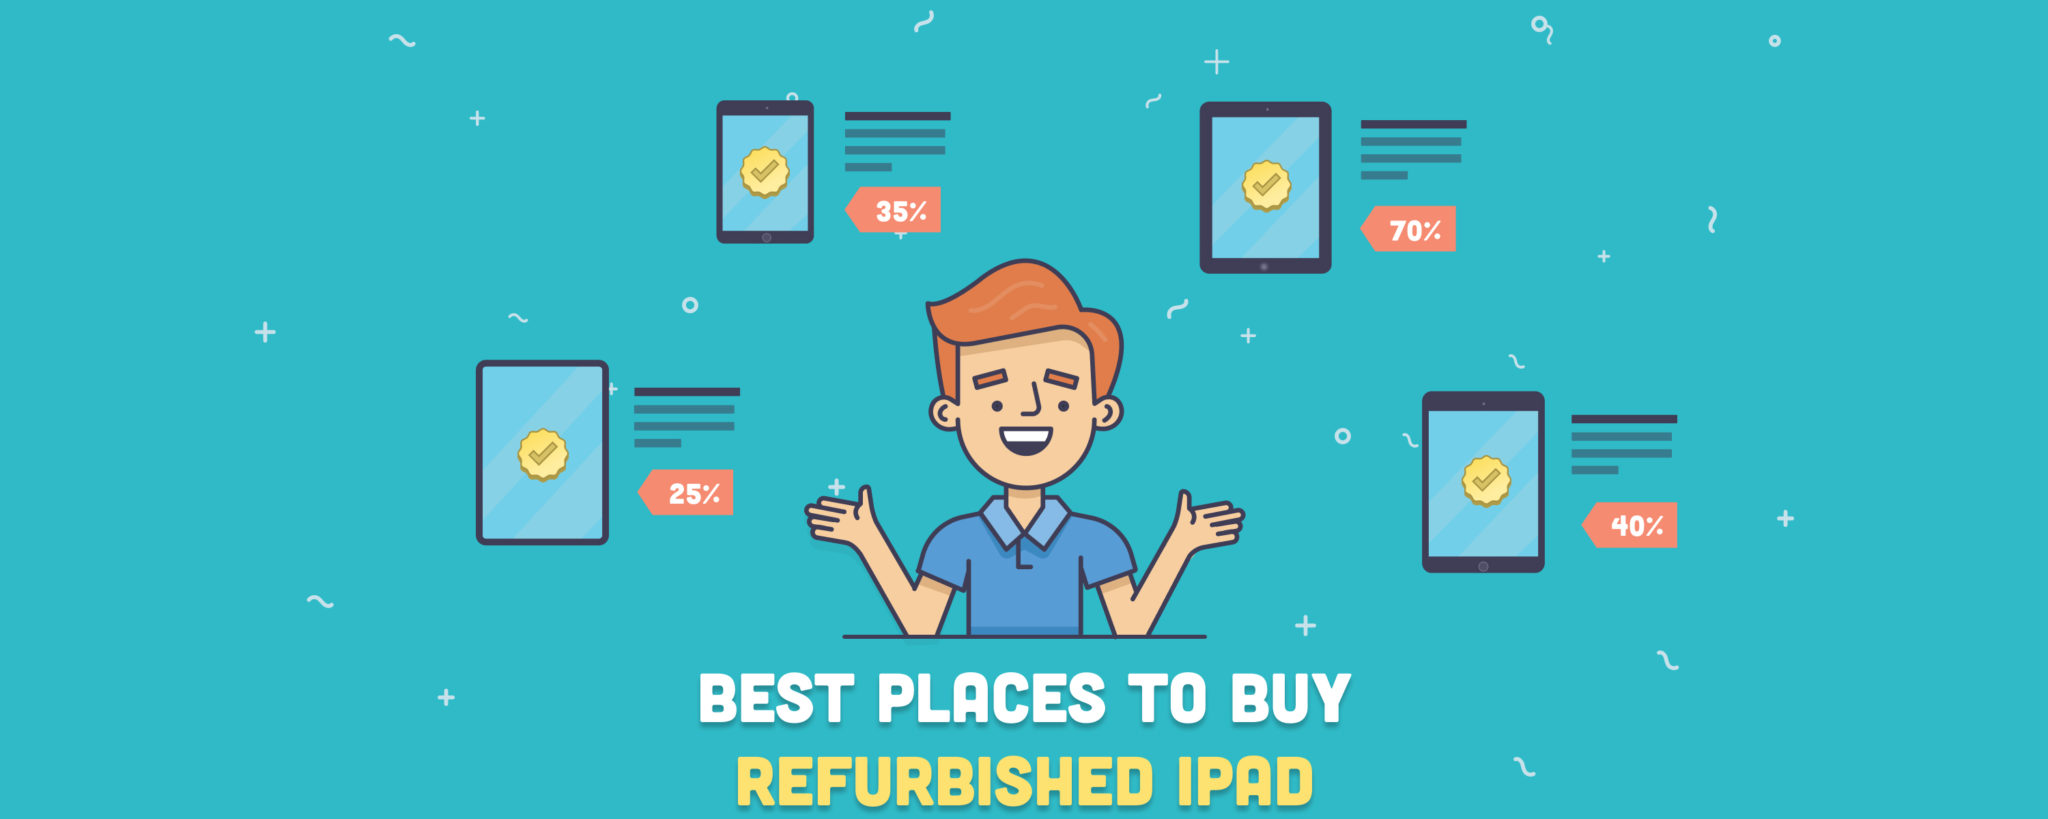 5 Best Places to Buy a Refurbished iPad